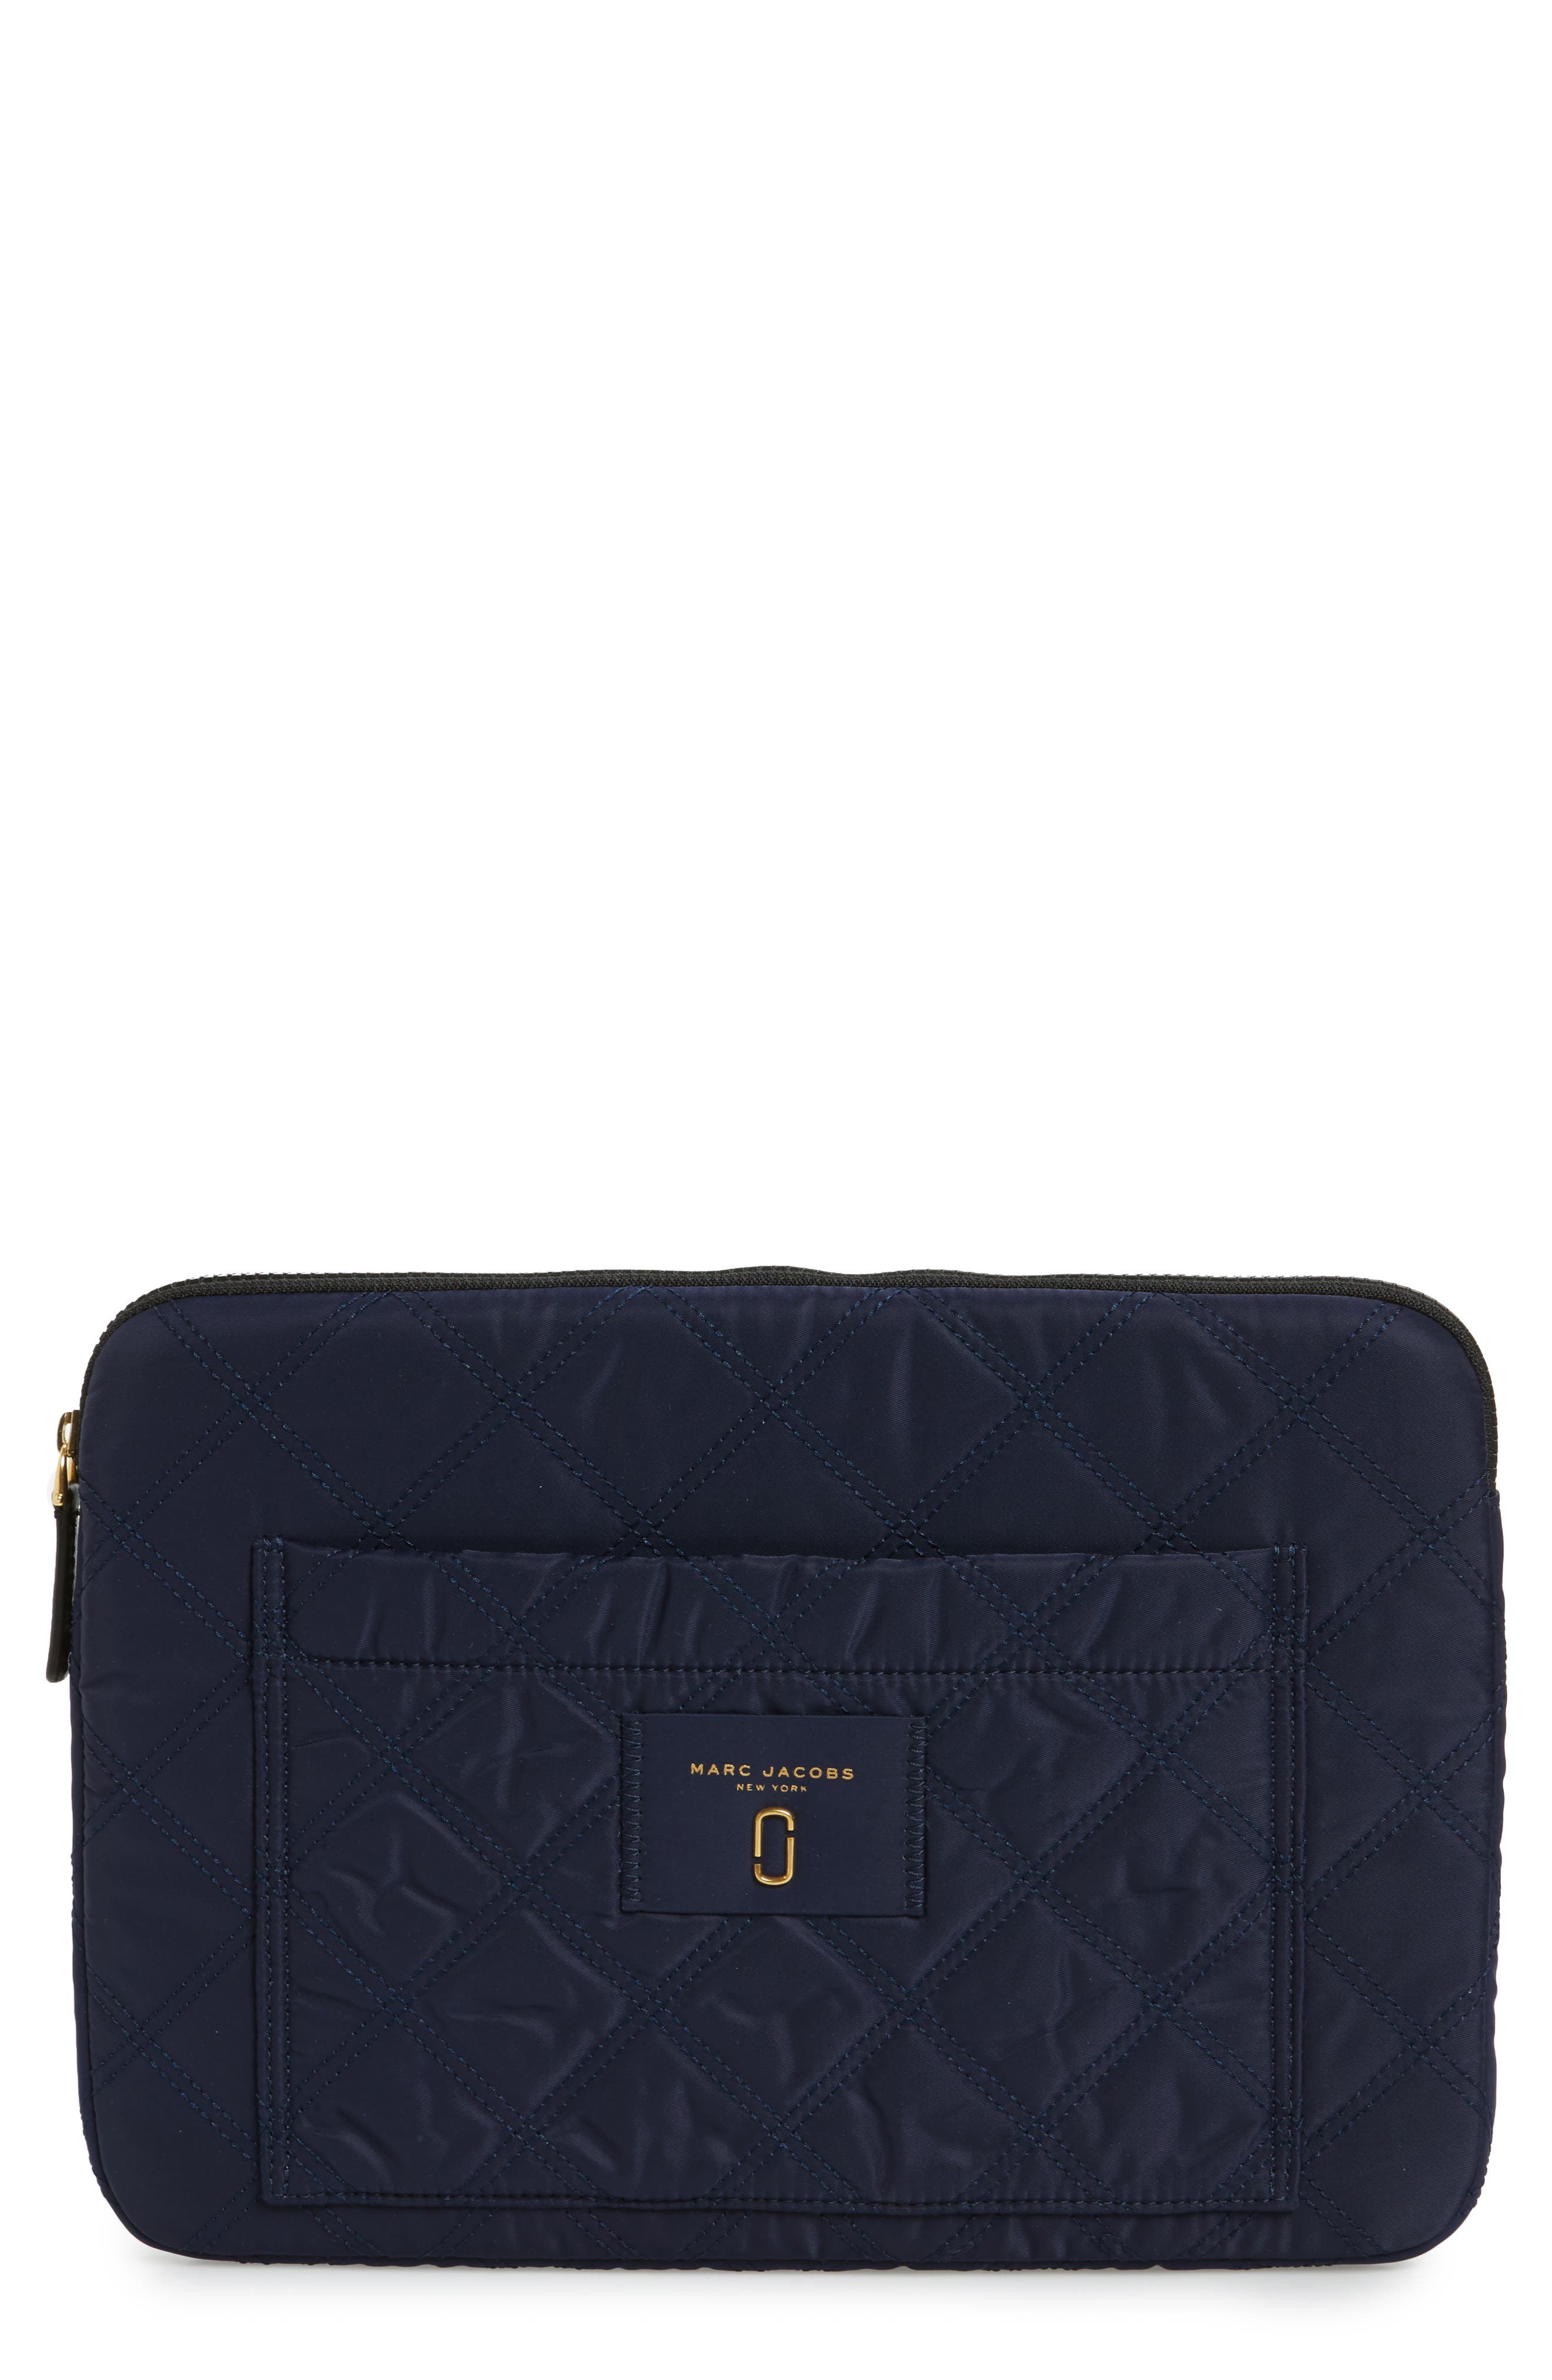 MARC JACOBS Knot 13-Inch Laptop Sleeve